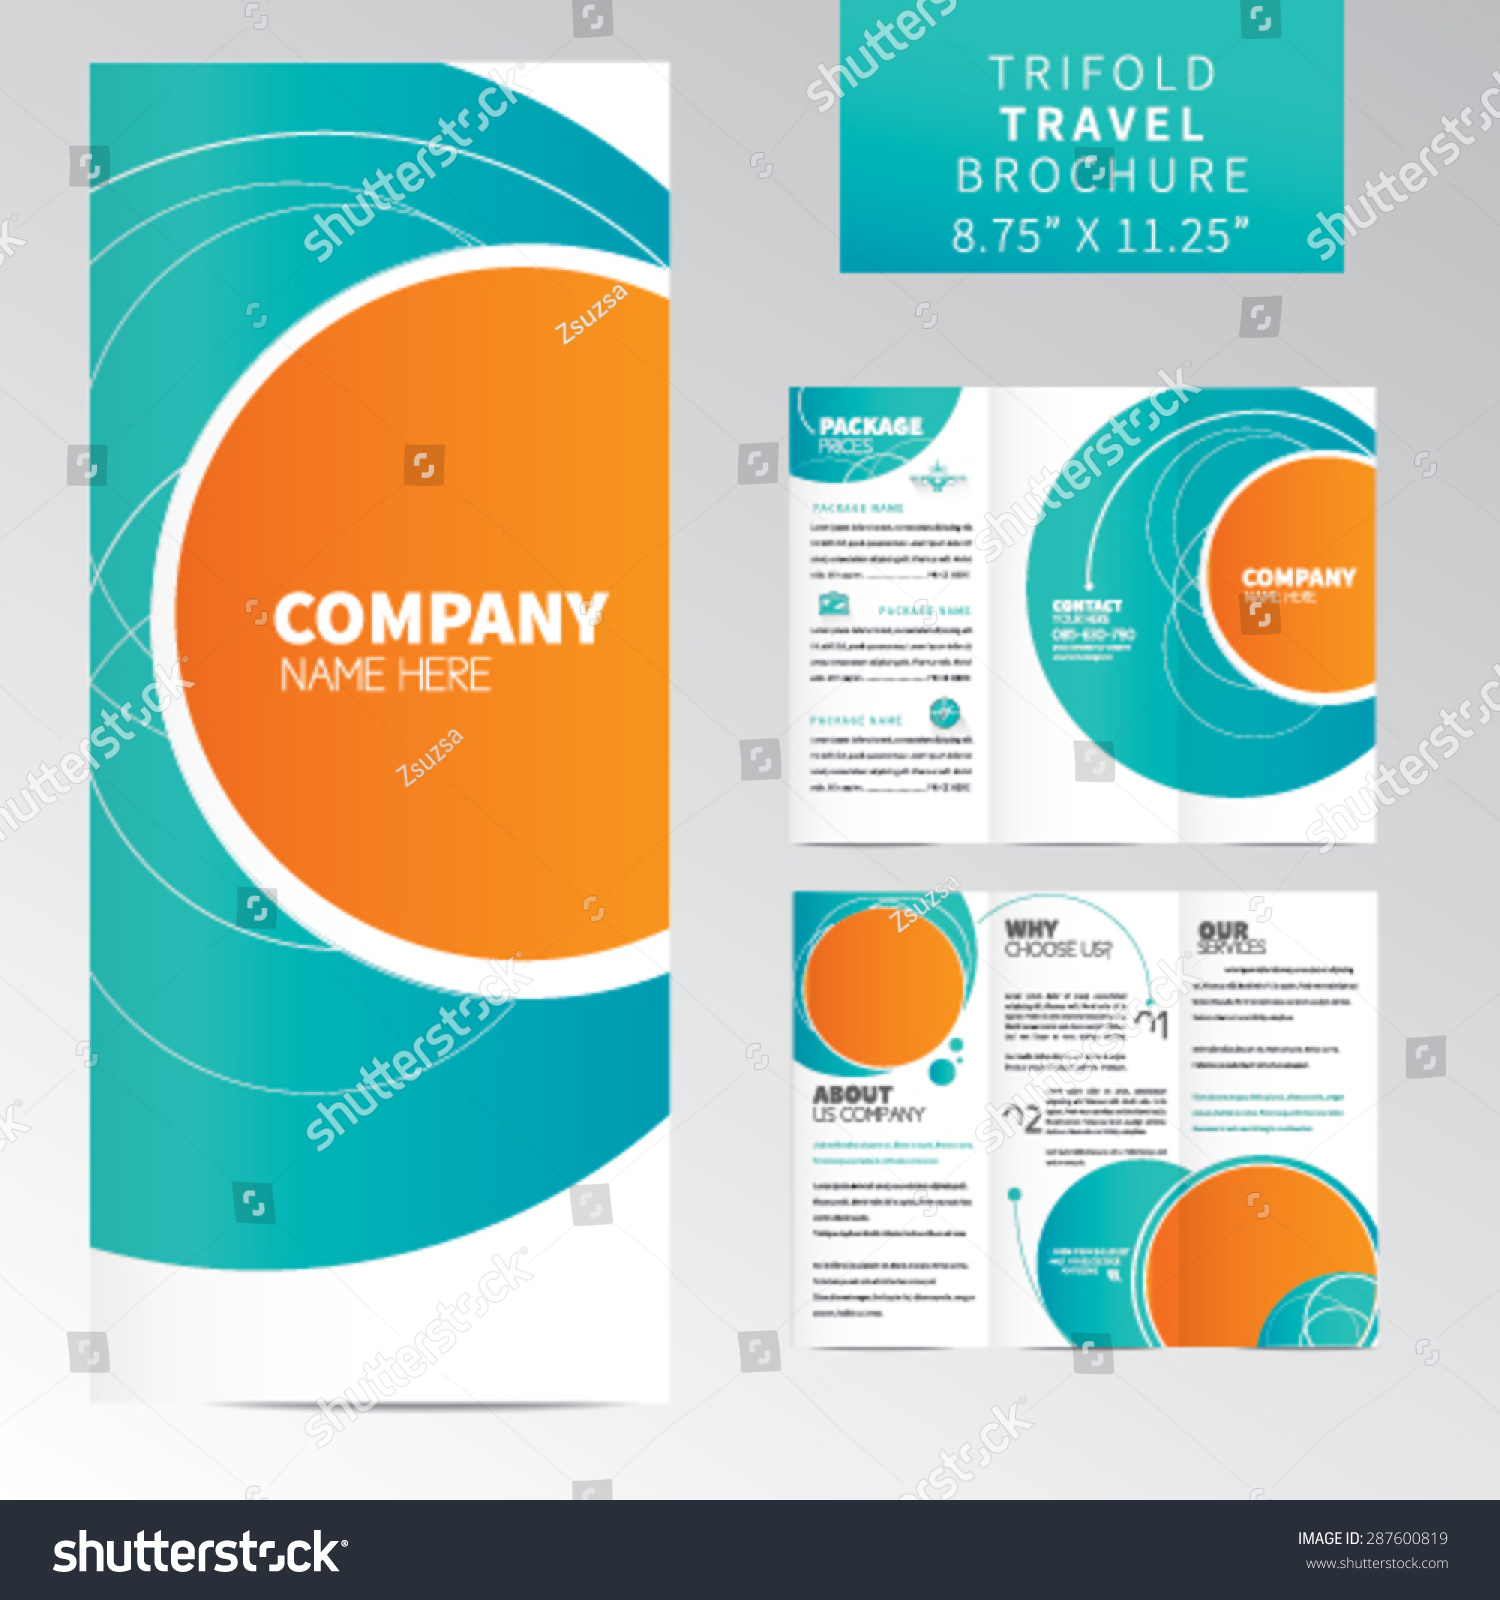 trifold travel brochure